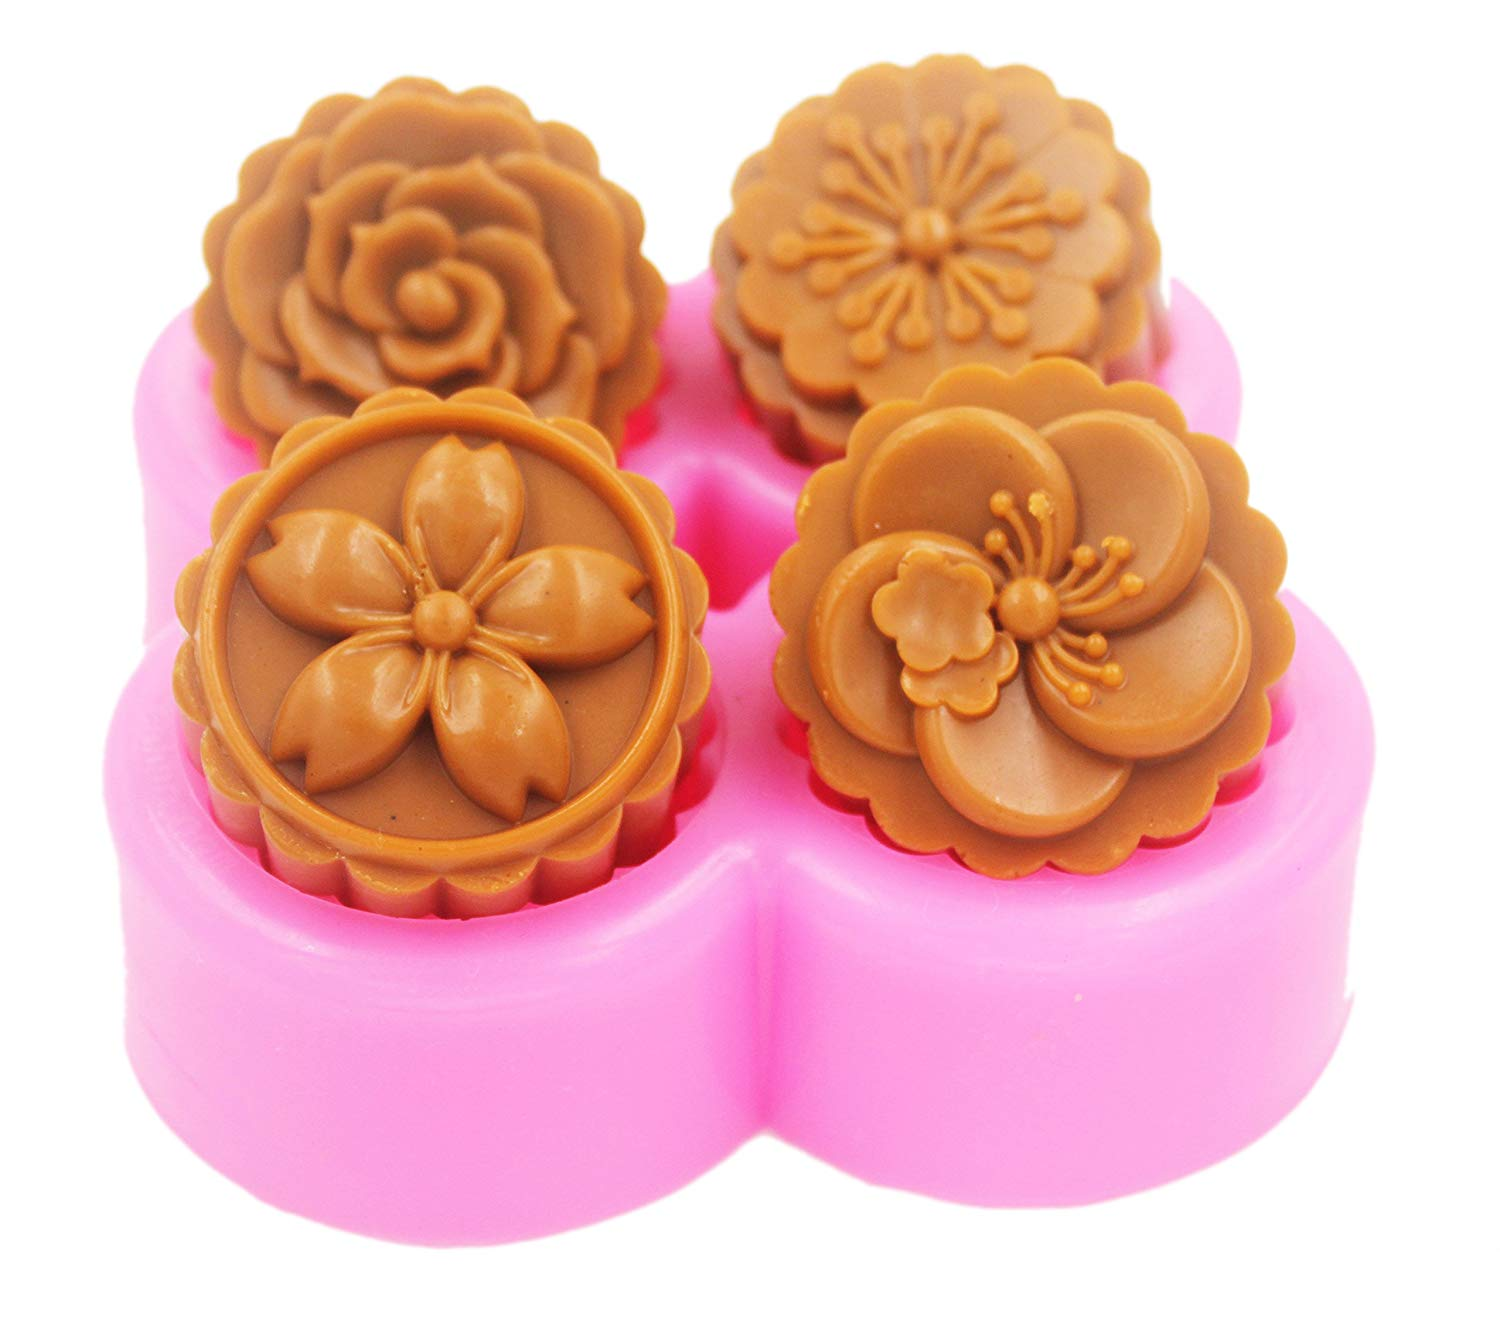 Longzang Silicone Soap Molds Shapes Flowers 4 cavity Soap Mold Silicone Soap Molds